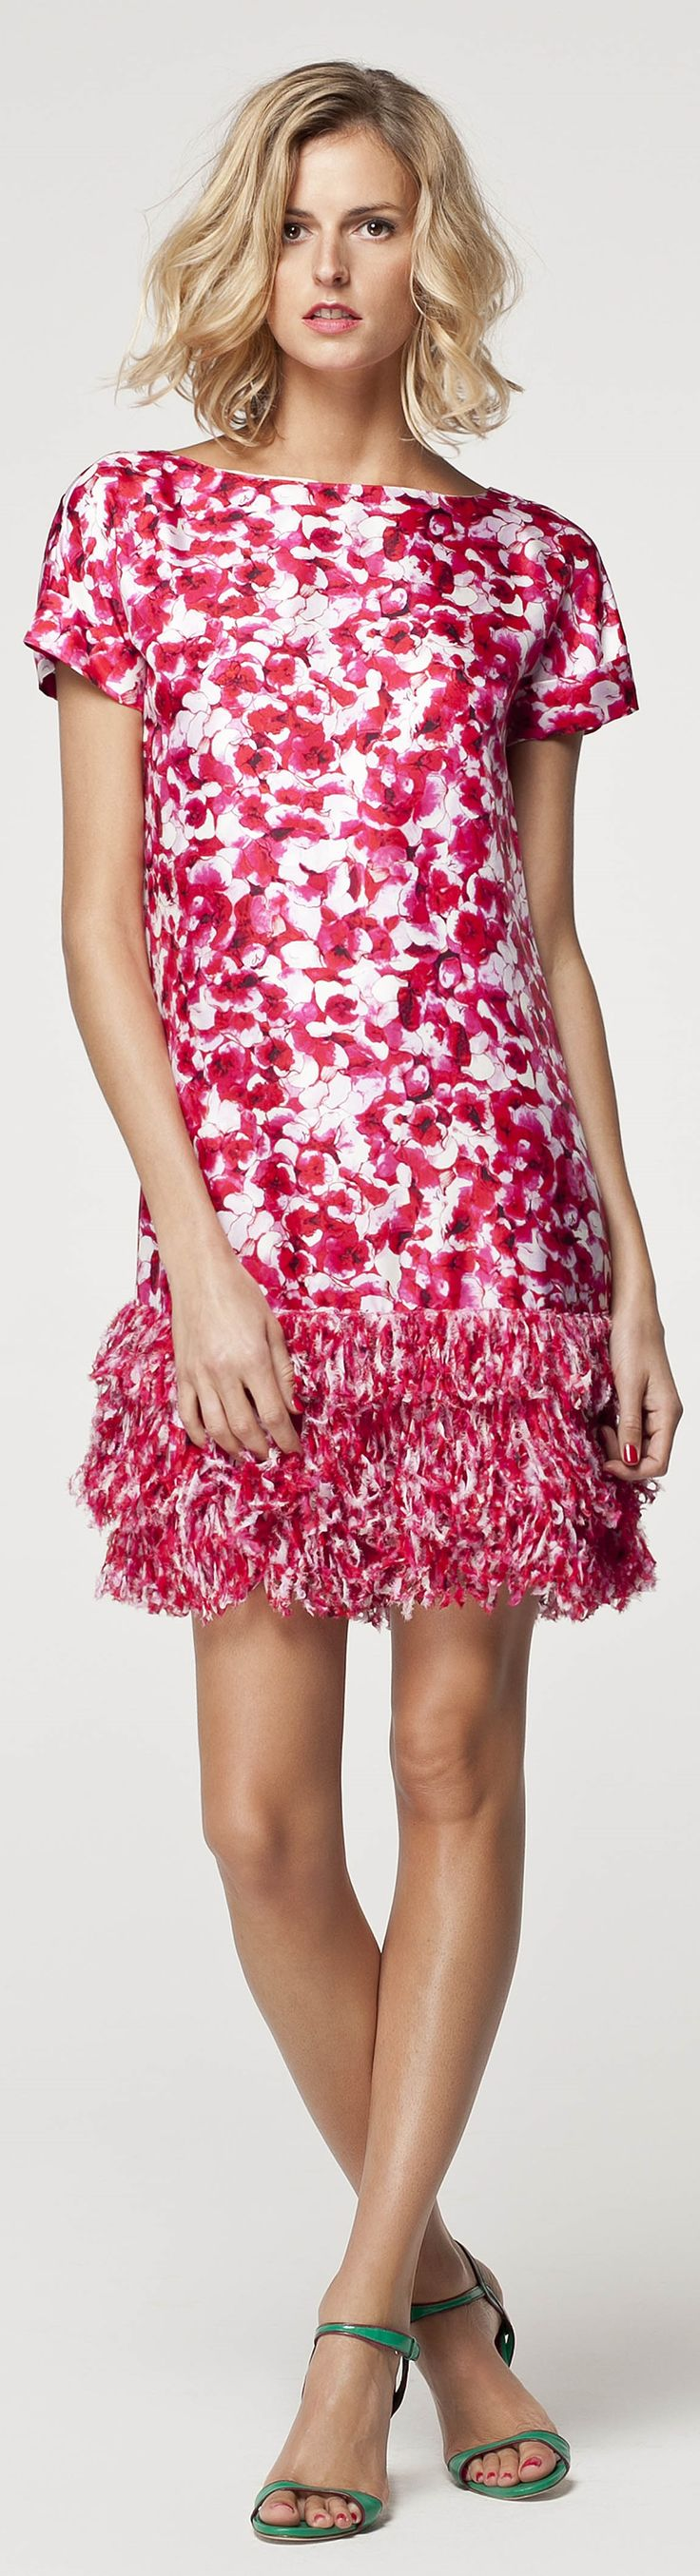 Carolina Herrera floral white and pink dress women fashion outfit clothing style apparel @roressclothes closet ideas